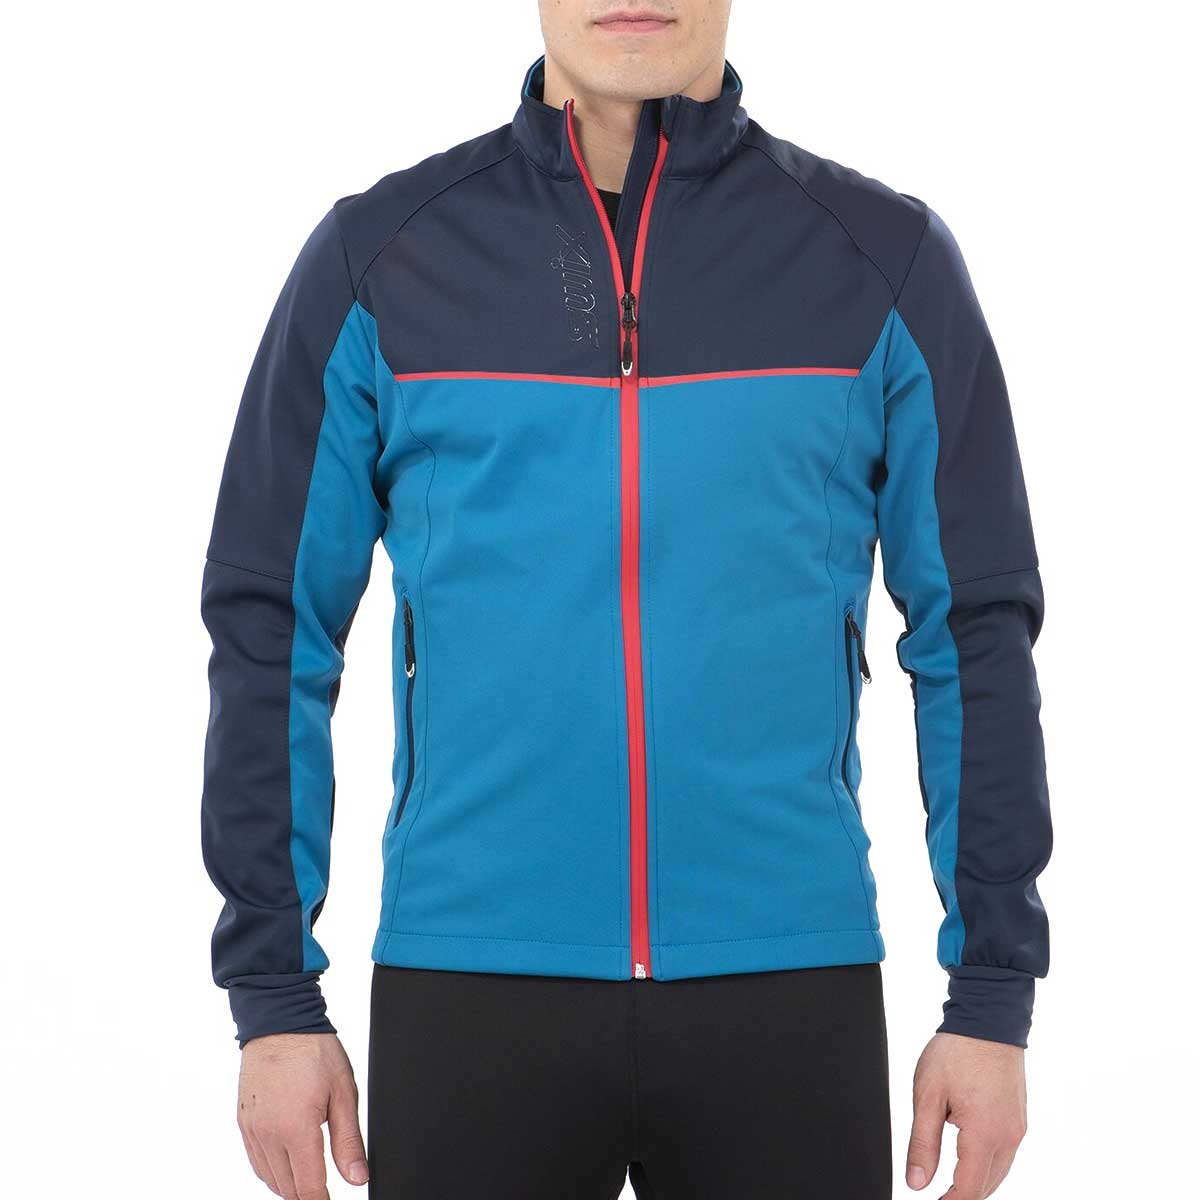 Swix Men's Delda Light Softshell Jacket in Blue Sapphire